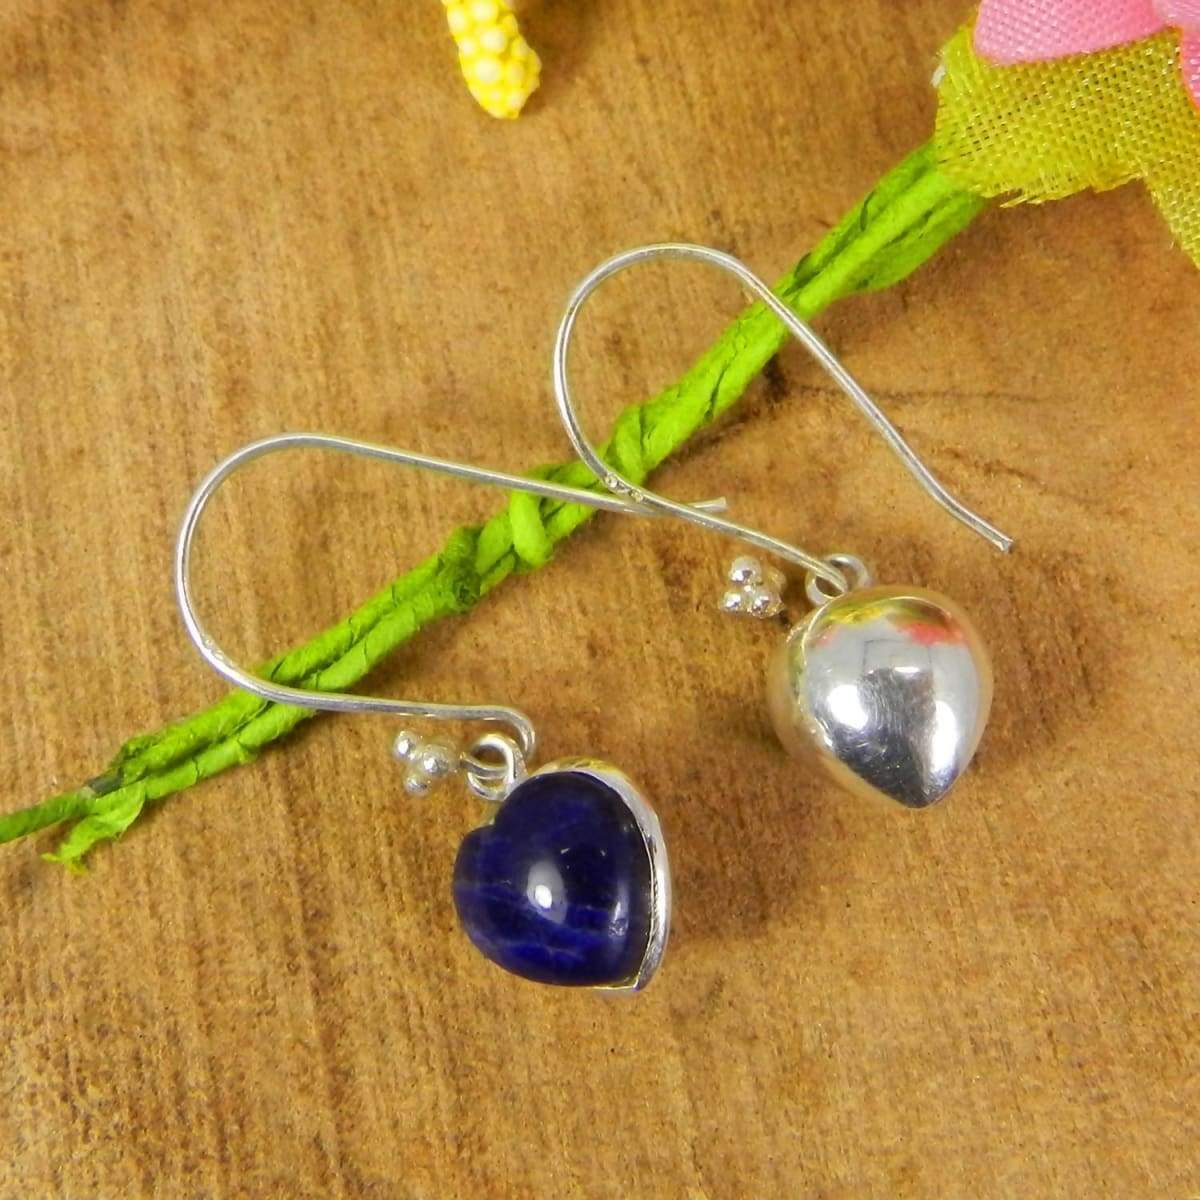 Earrings Heart Shaped Sodalite 925 Sterling Silver Dangle